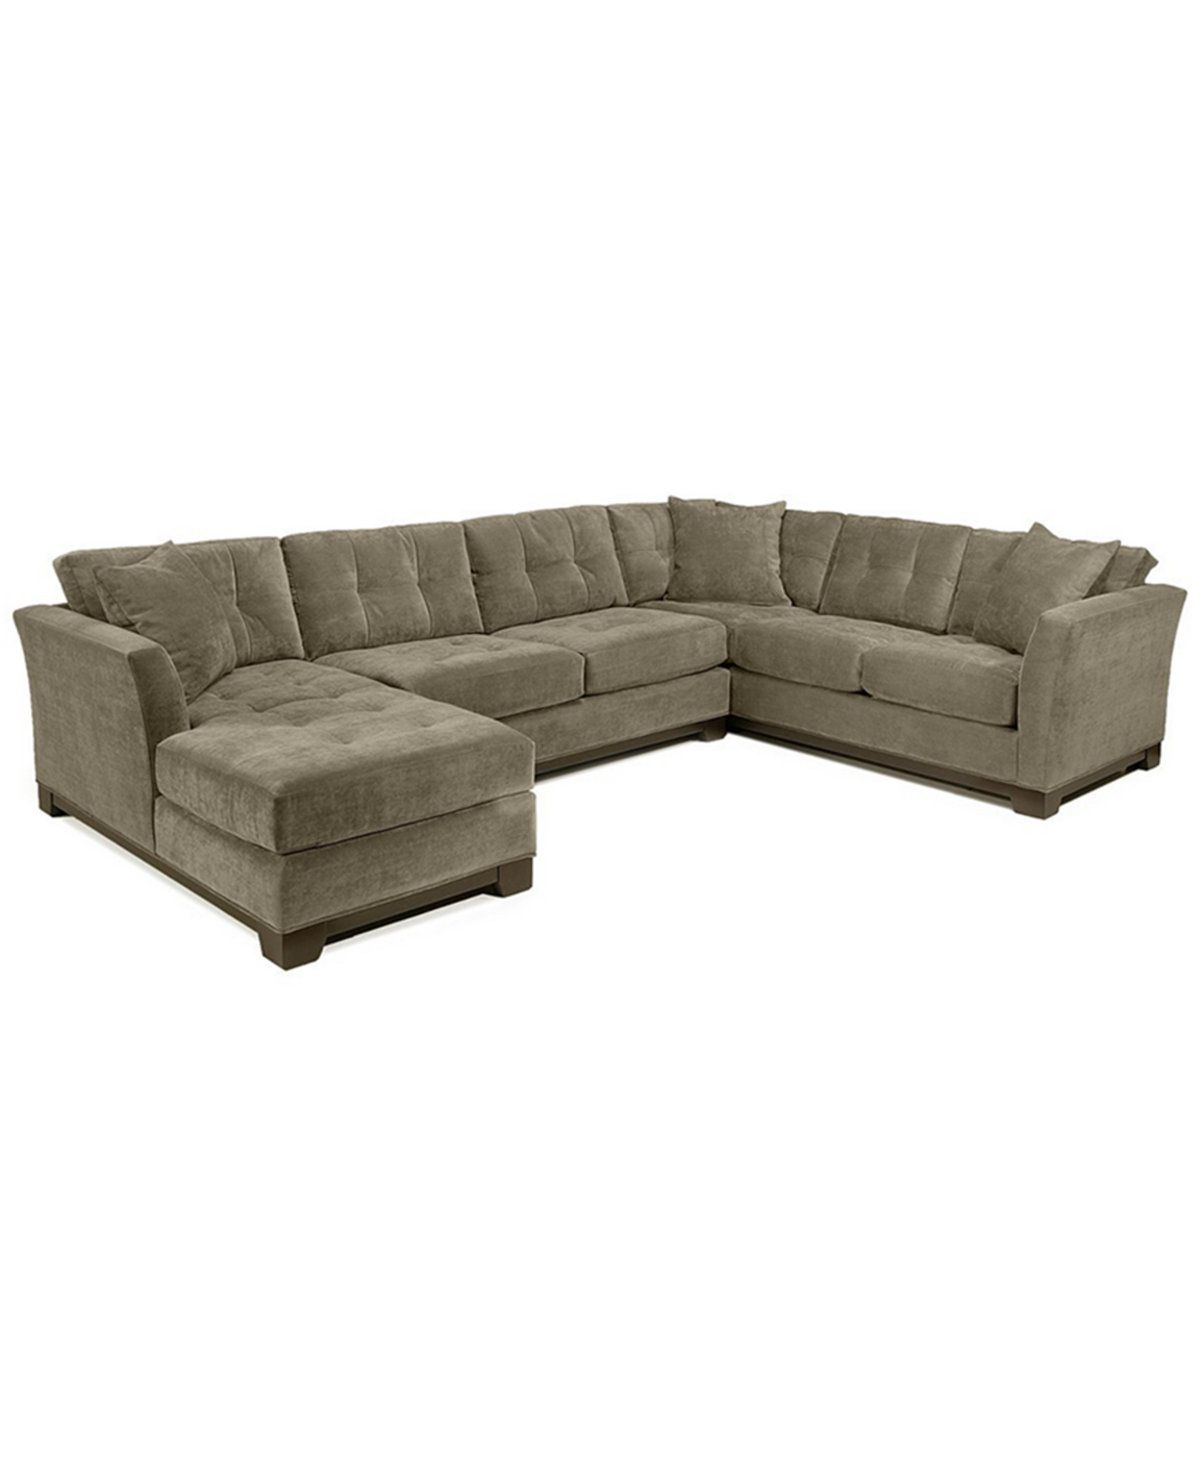 Elliot 3-Pc. Microfiber Sectional with Sleeper Sofa & Chaise ...